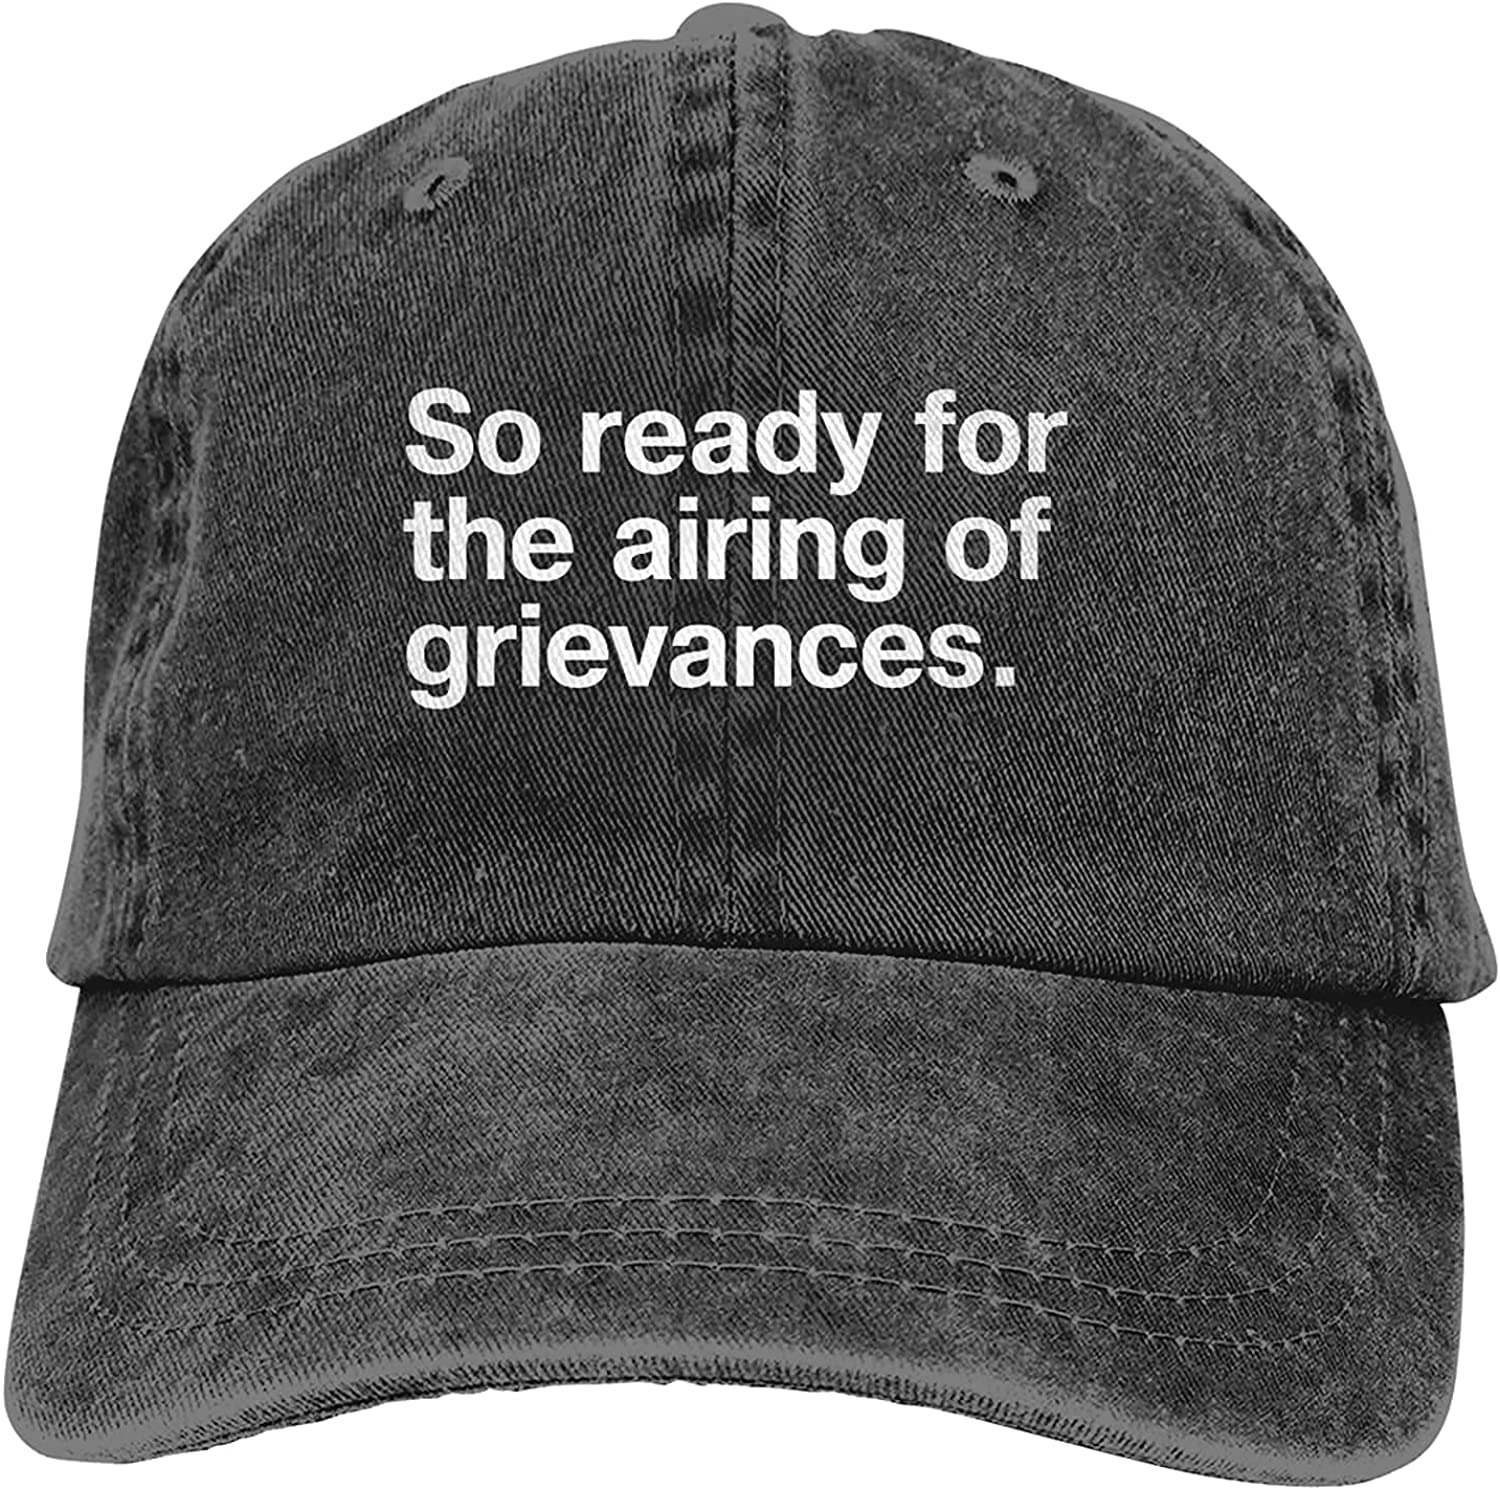 BGWORZD So Ready for The Airing of Grievances Adjustable Washed Dad Hat Cowboy Cap Denim Cap Baseball Cap